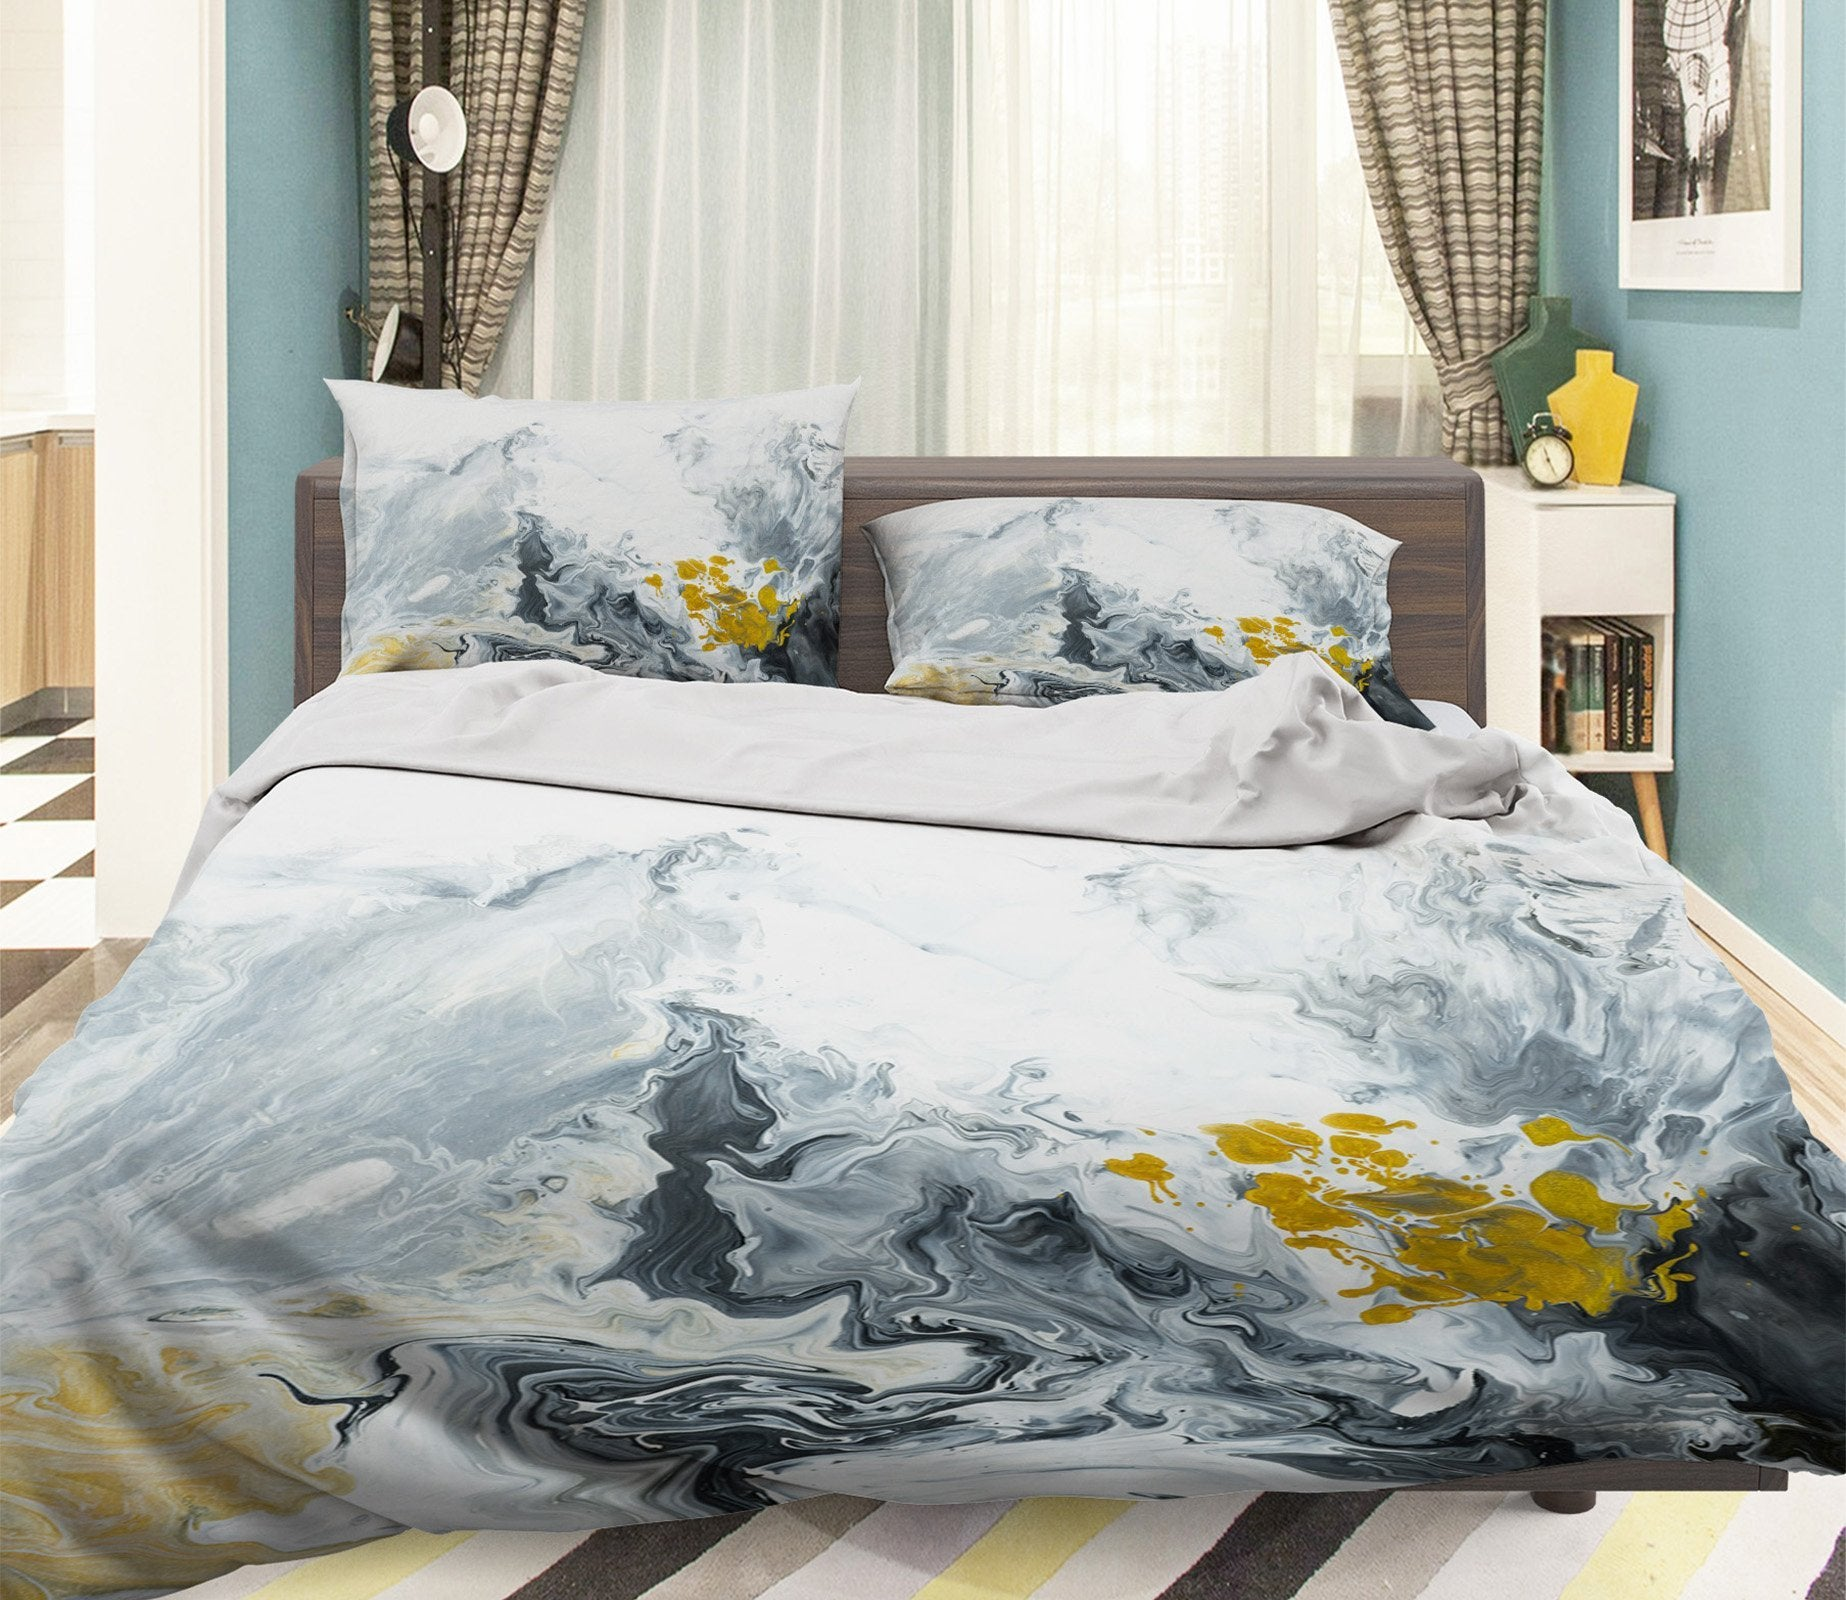 3D Pigment Gray Abstraction 067 Bed Pillowcases Quilt Wallpaper AJ Wallpaper